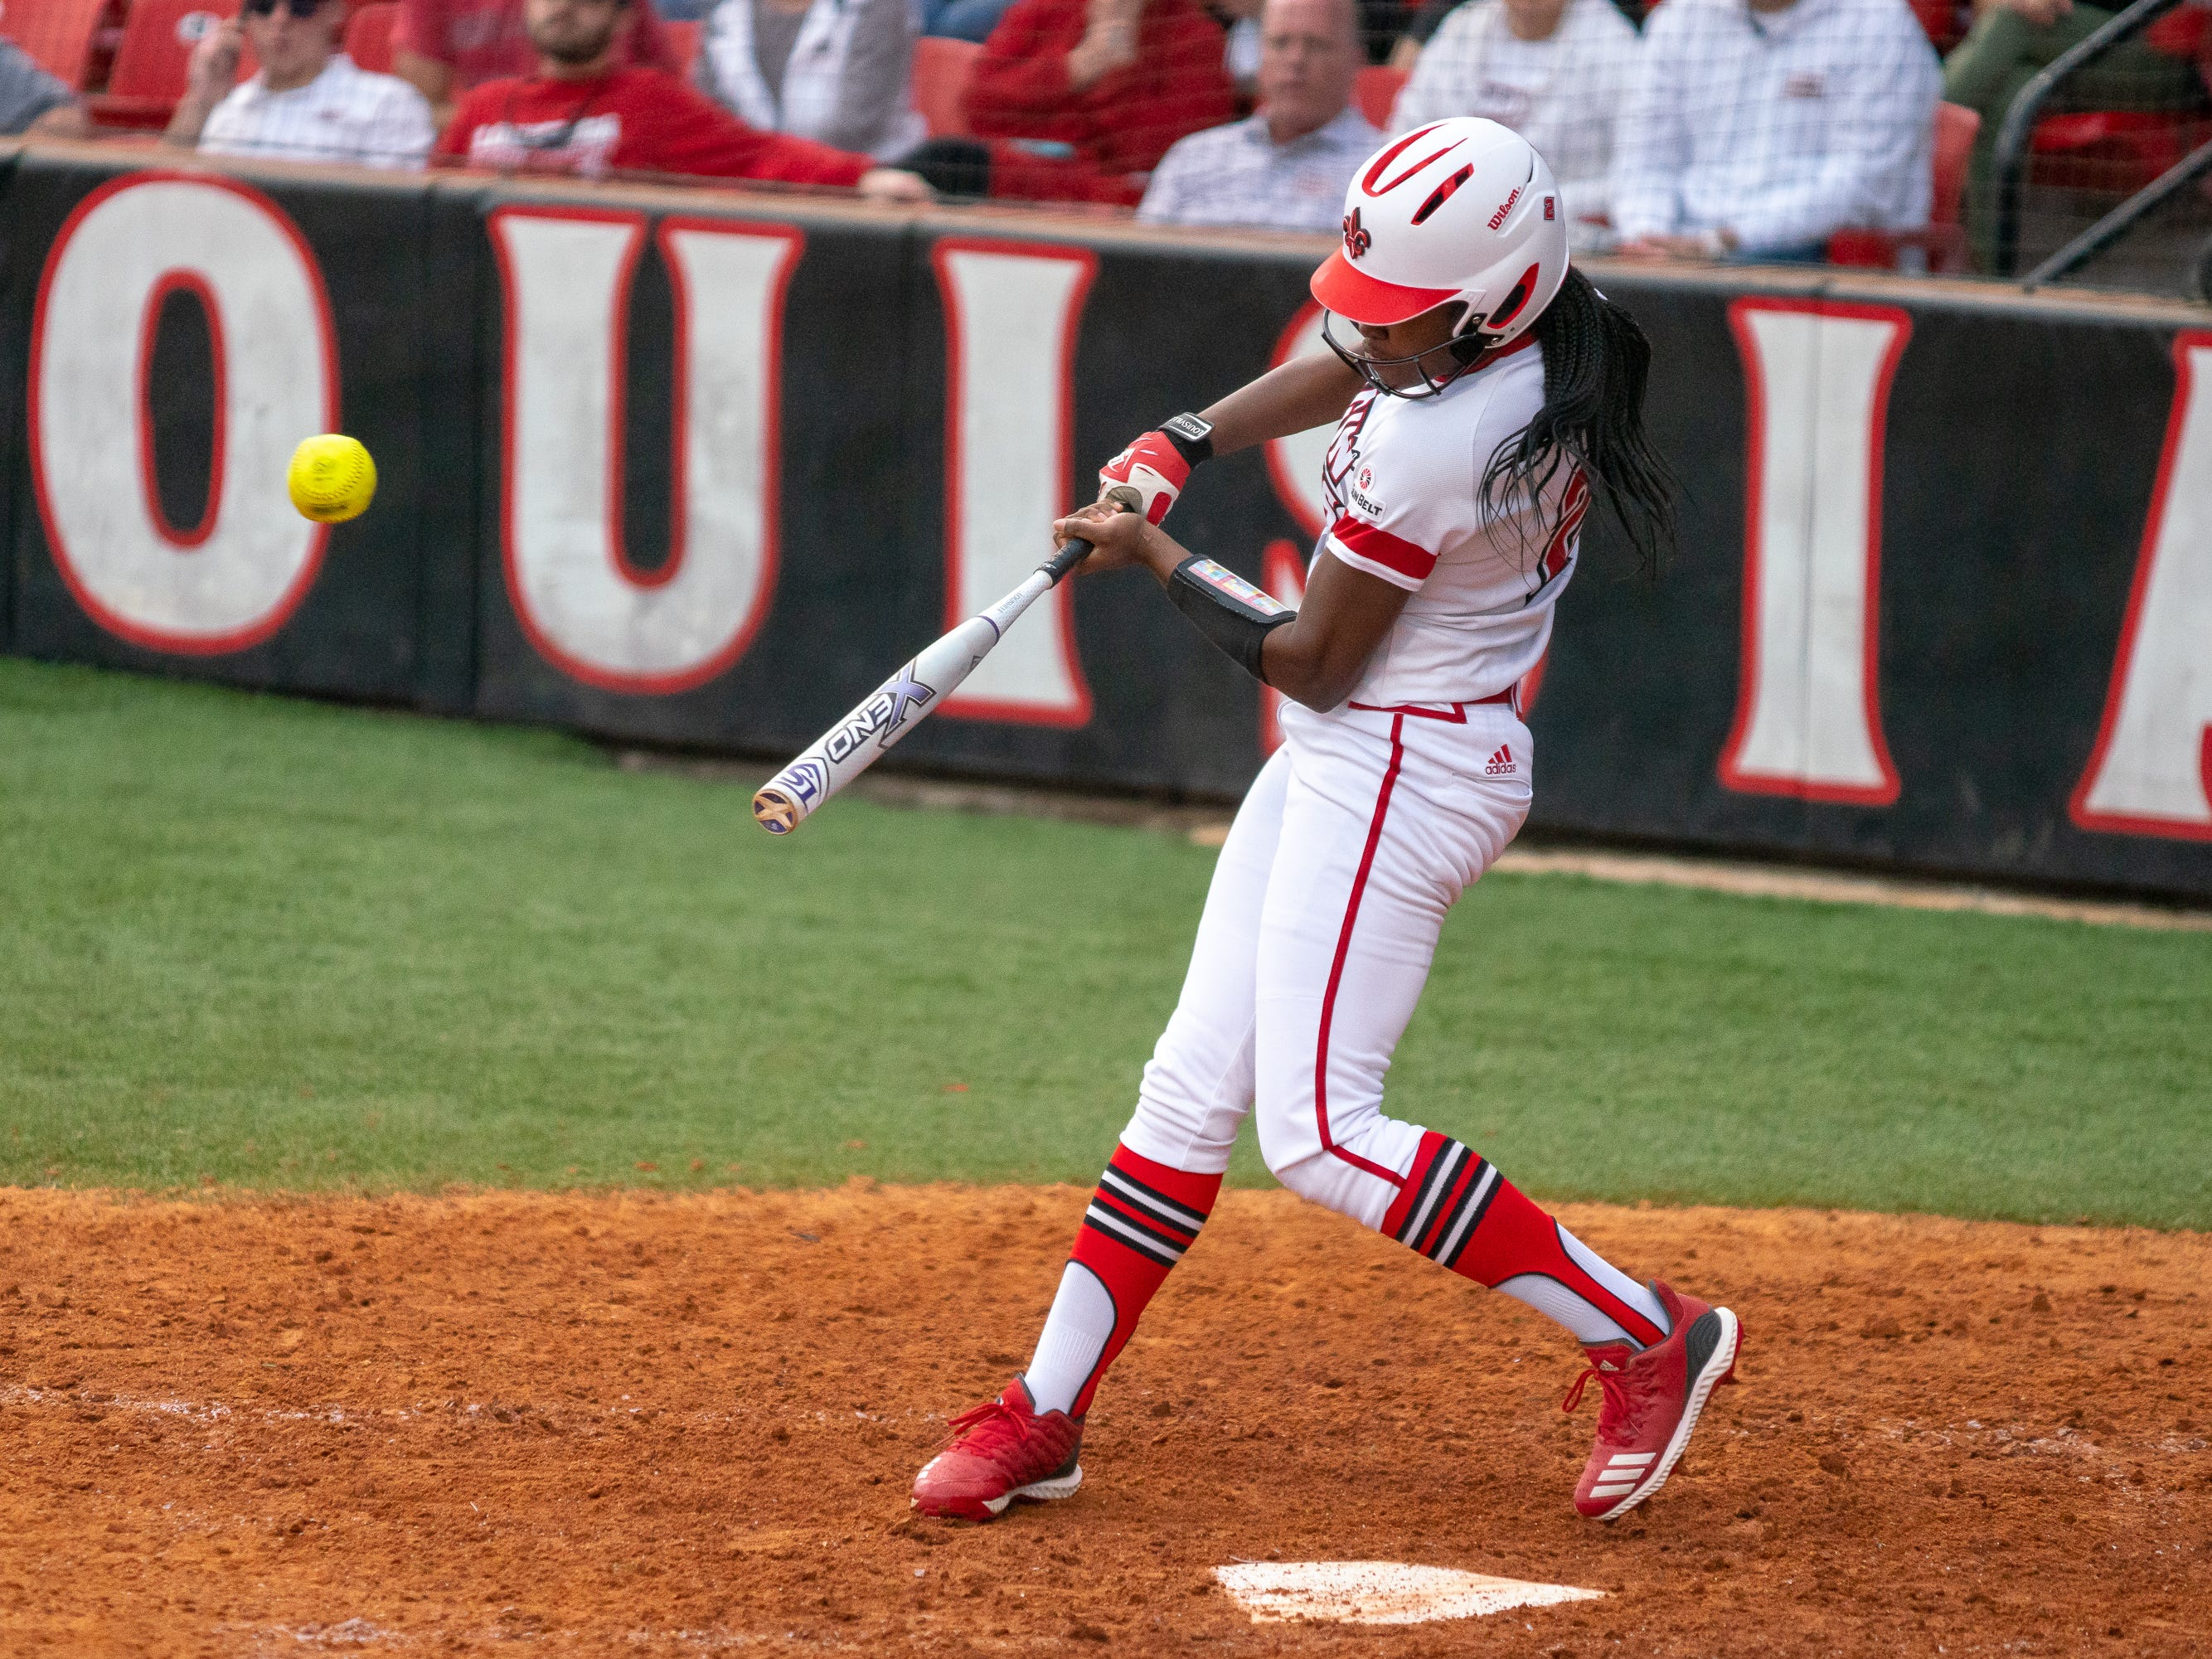 UL's Raina O'Neal hits the ball in the outfield as the Ragin' Cajuns play against the California Golden Bears at Lamson Park on February 11, 2019.